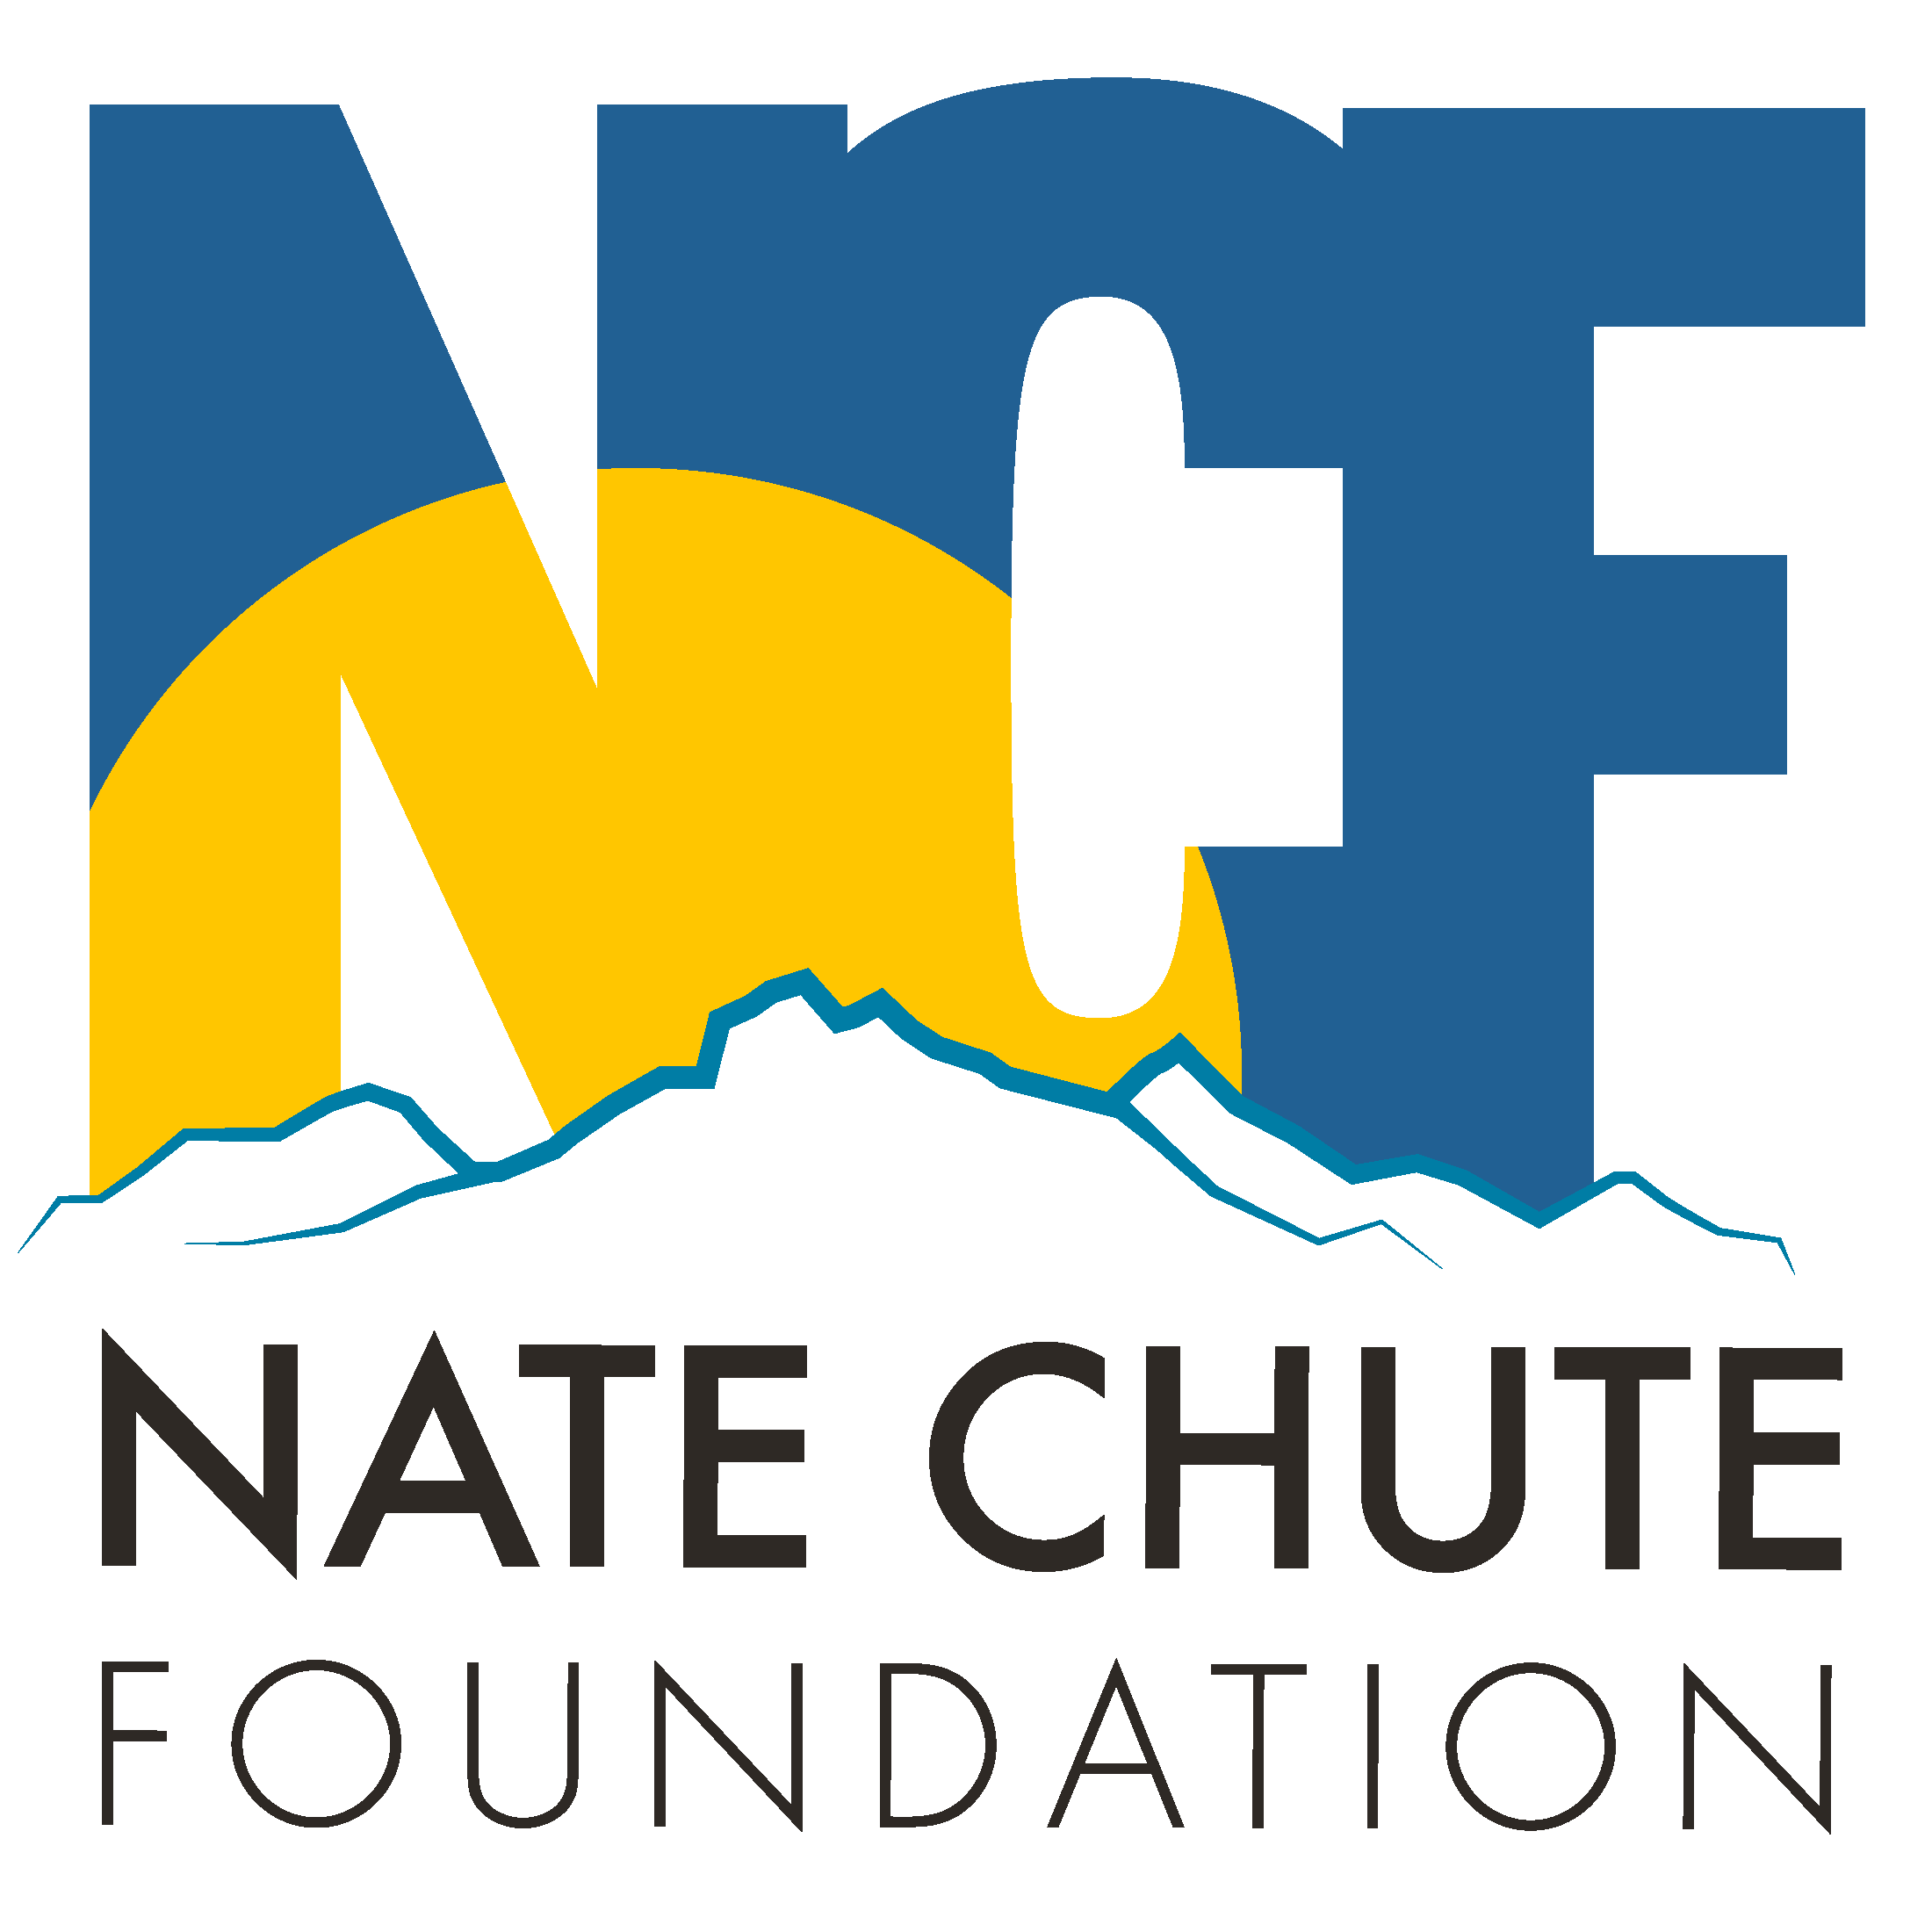 Nate Chute Foundation